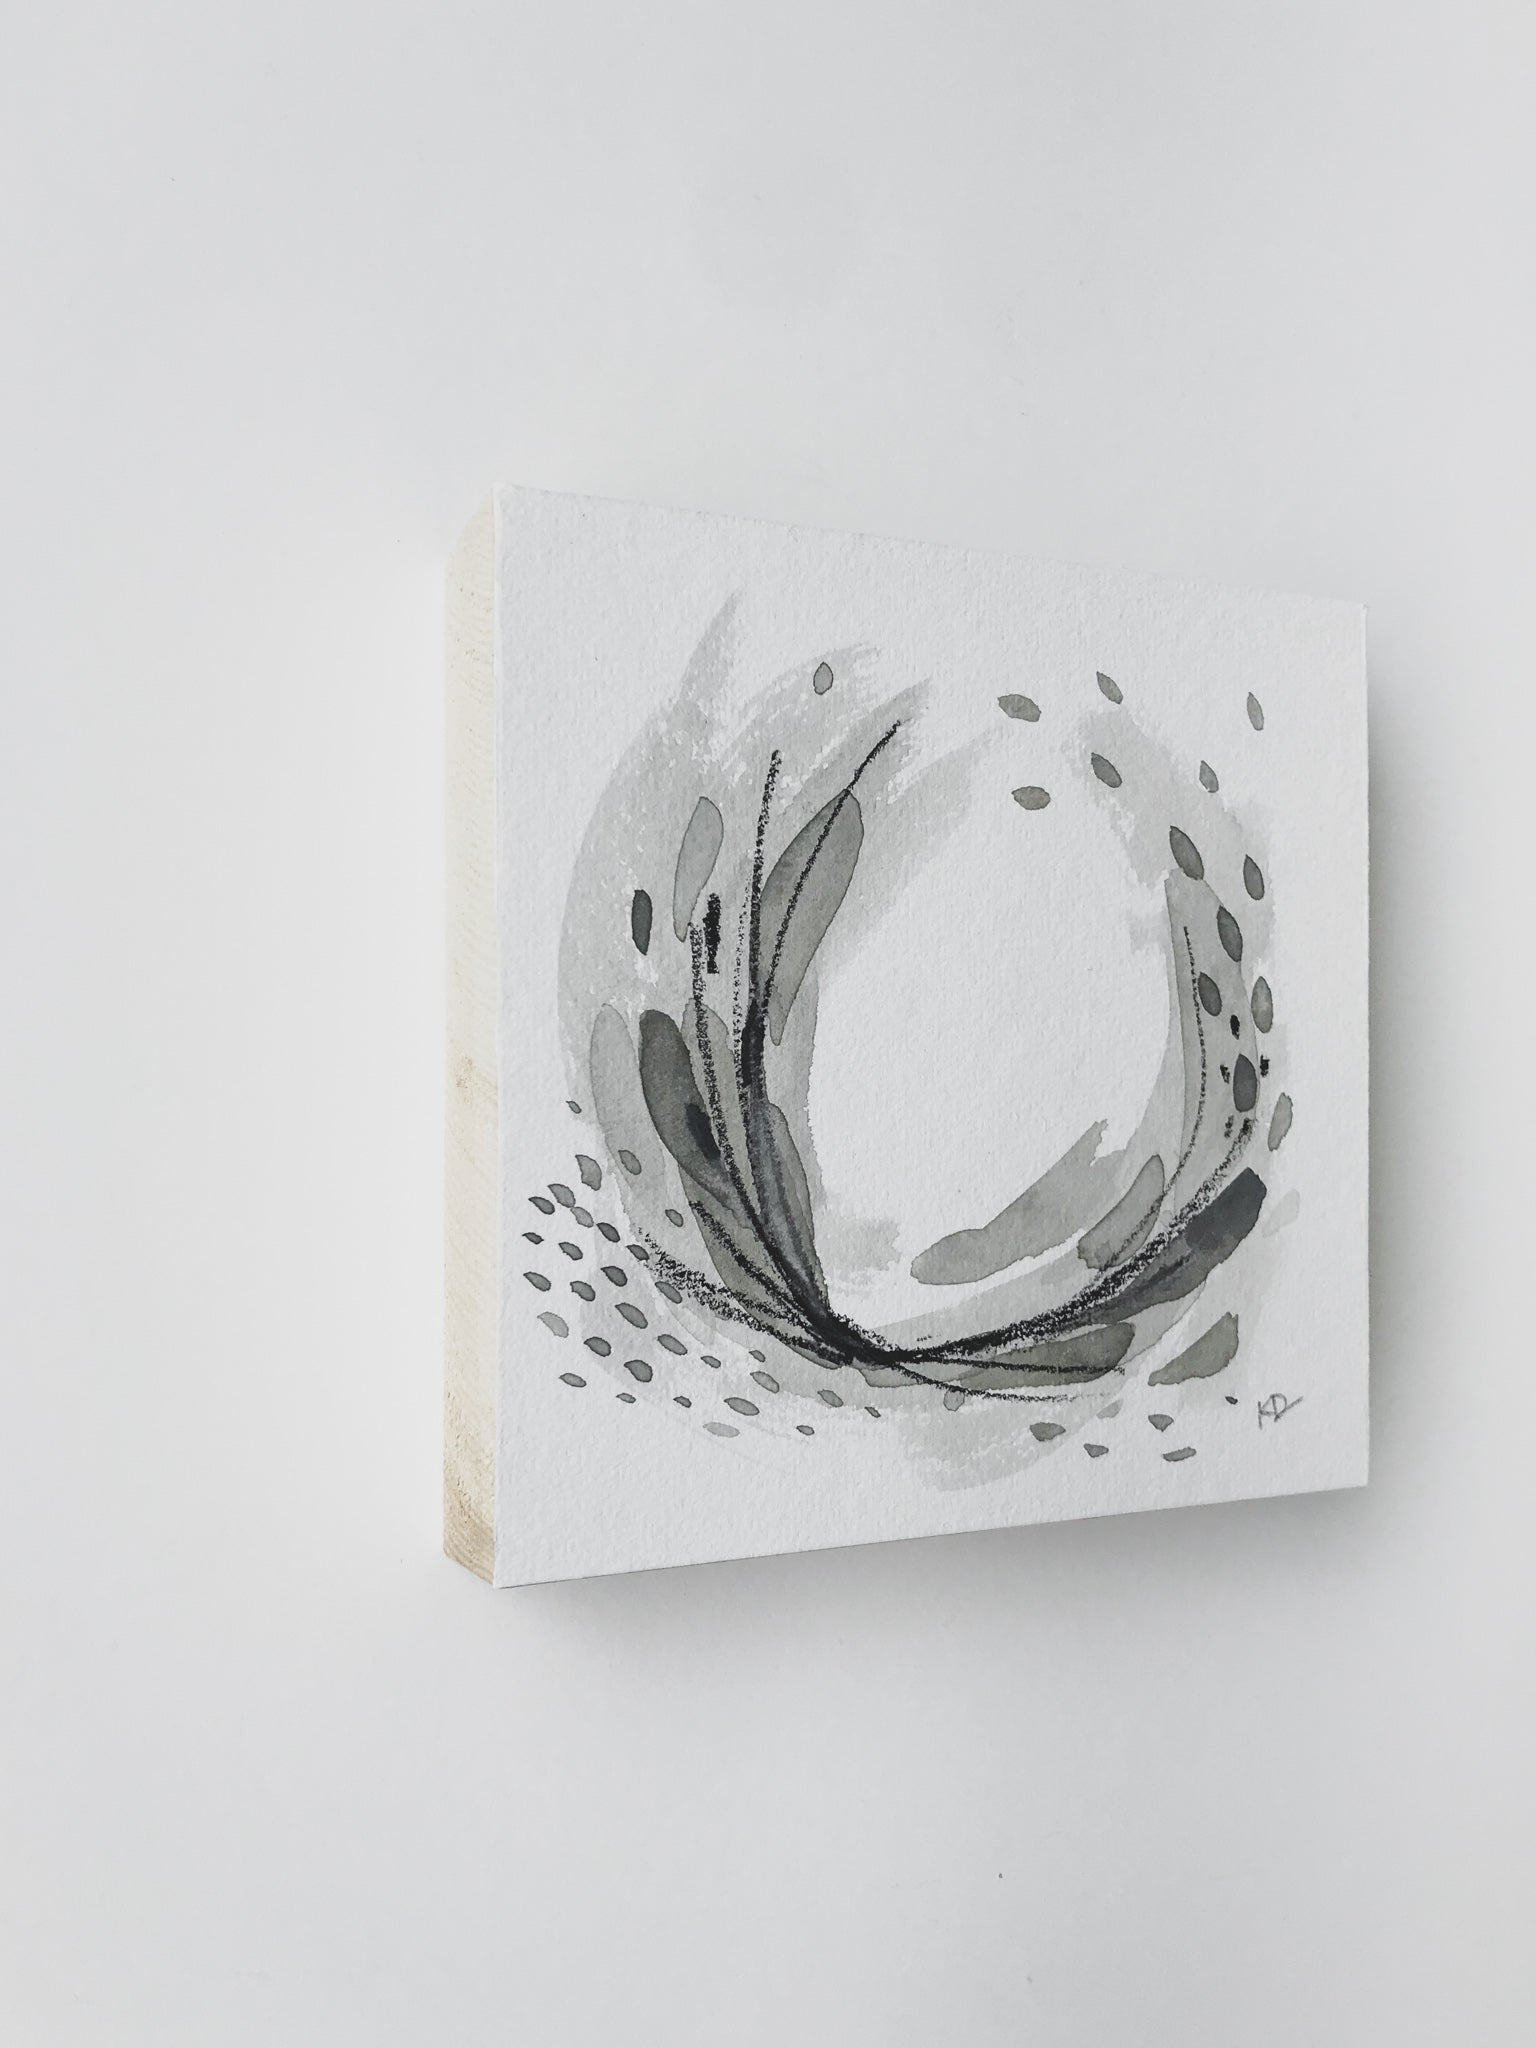 Neutral Series 24 - Minimal Abstract art mounted to wood block, ready to hang or stand. by kait dewolff @kaitcreative $72CAD